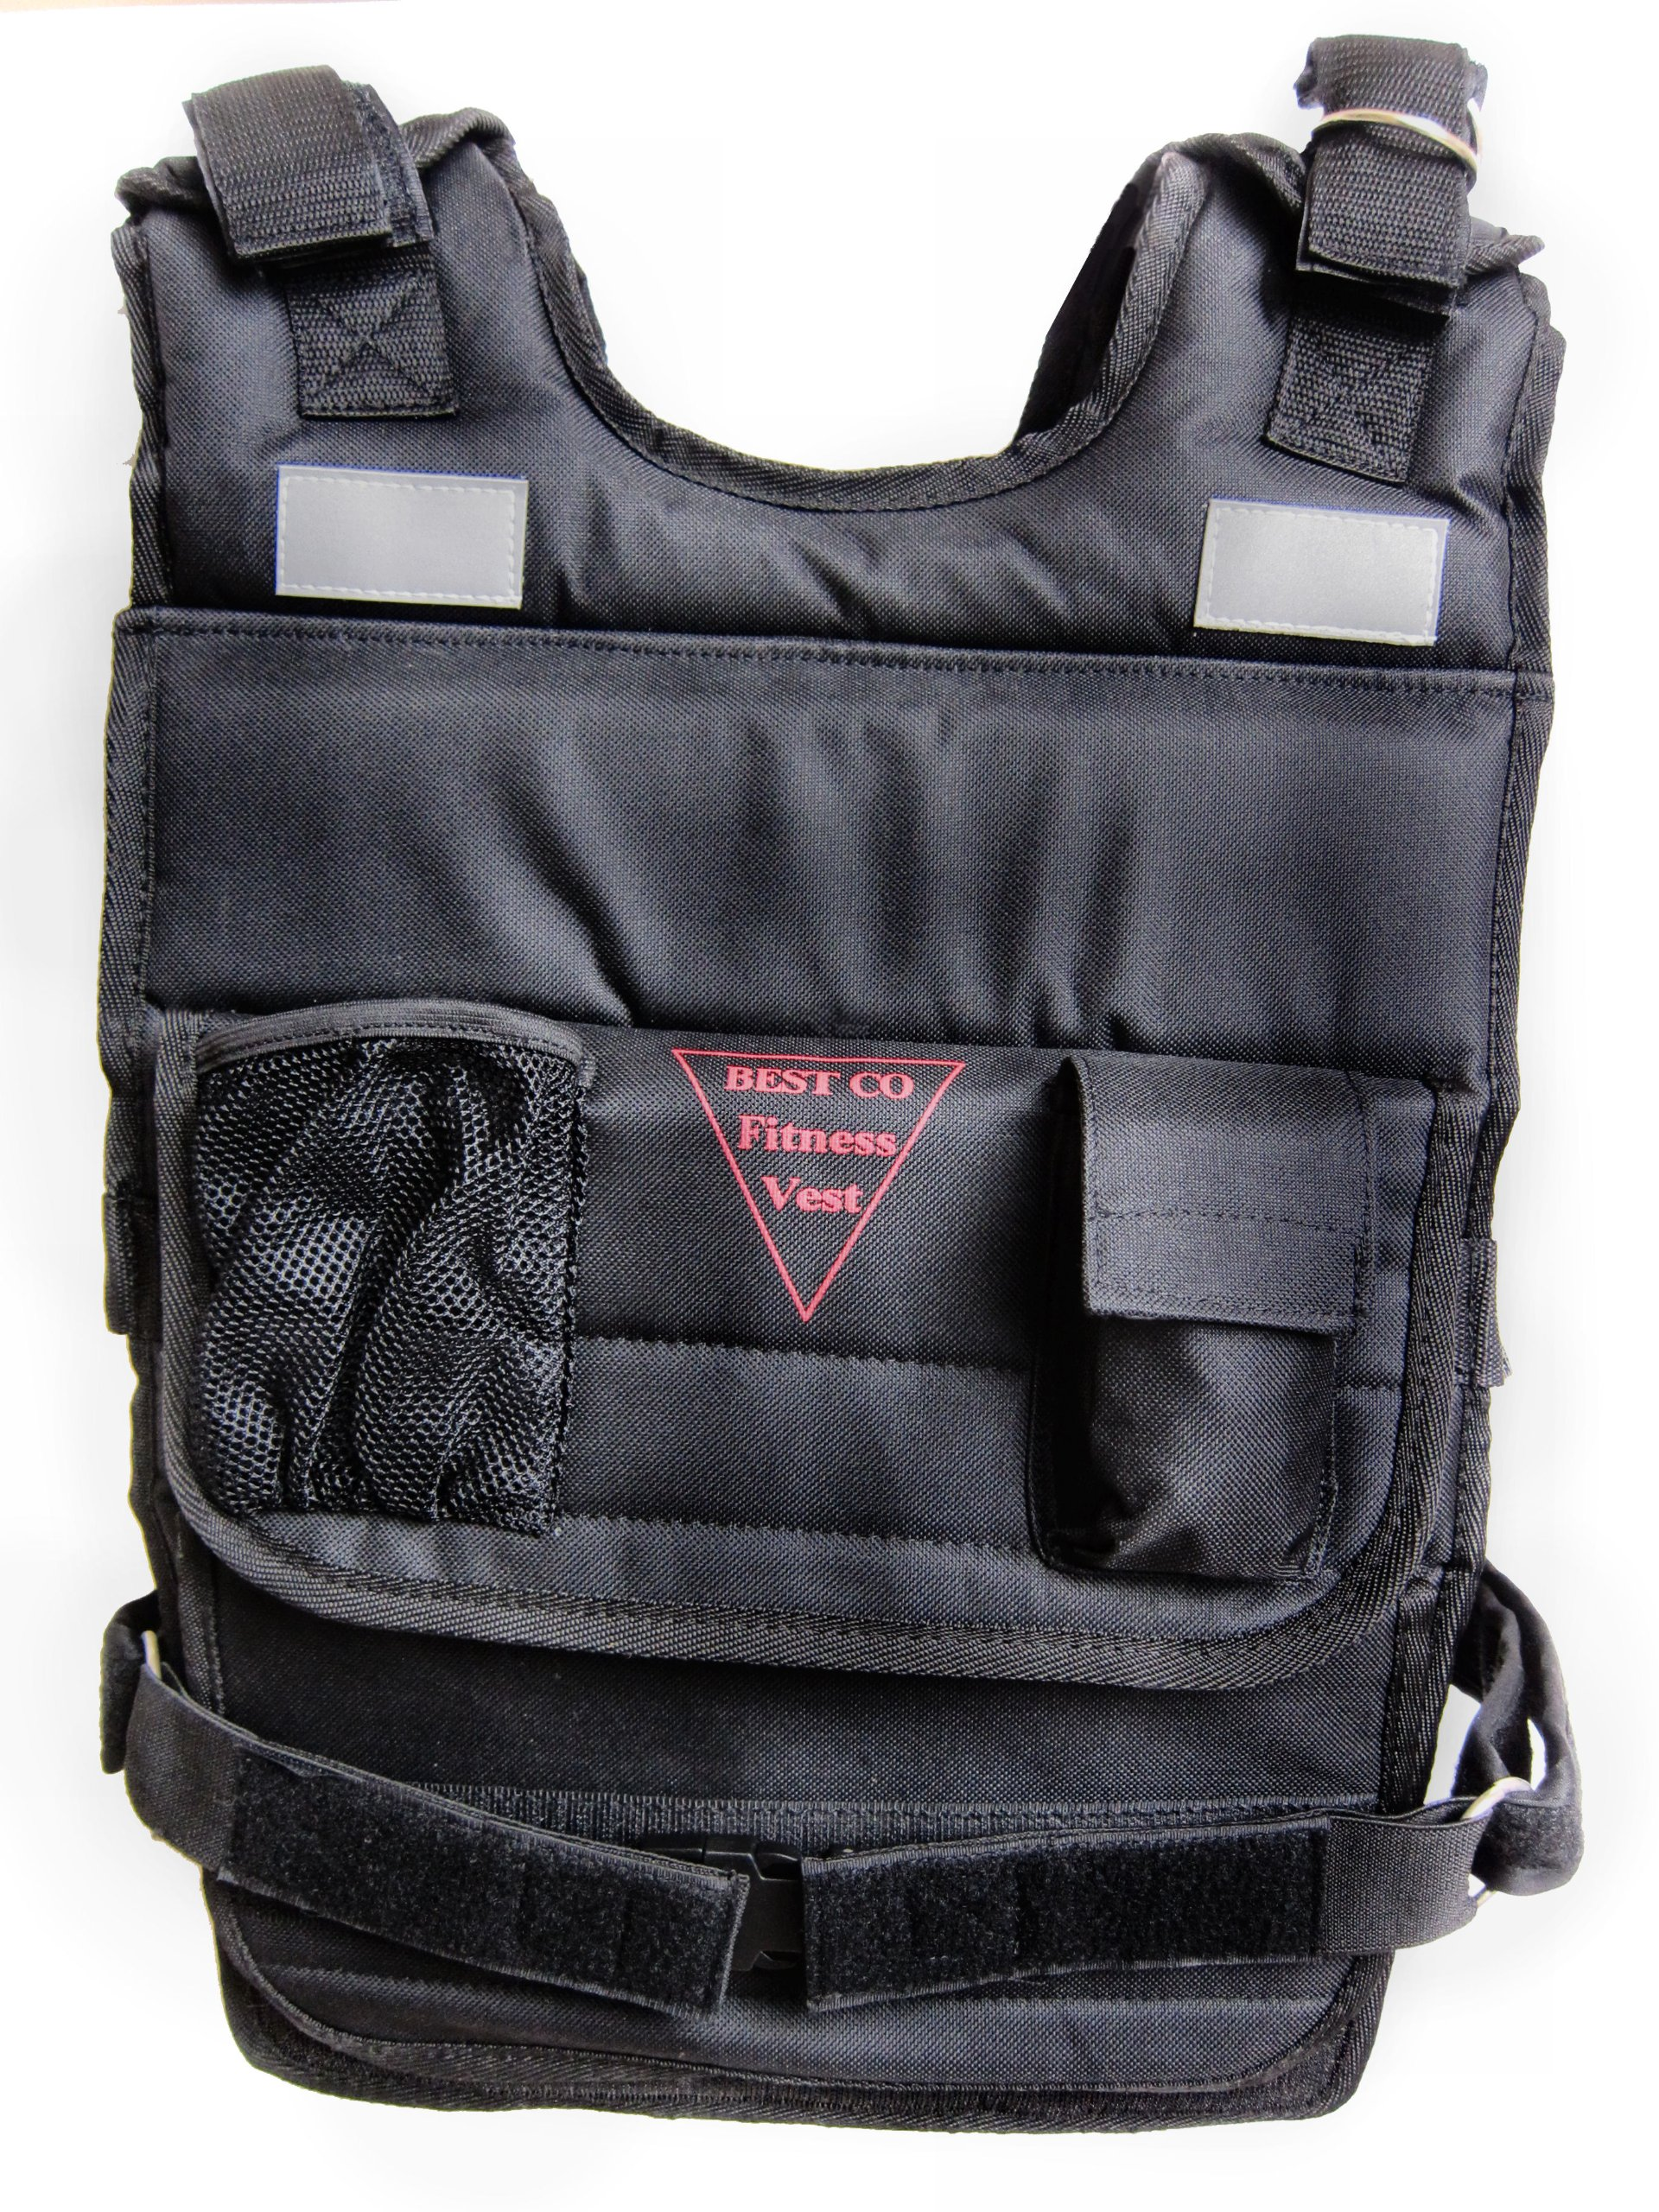 NEW WEIGHTED VEST 90 LBS Fitness Vest by BESTCO PRODUCTS